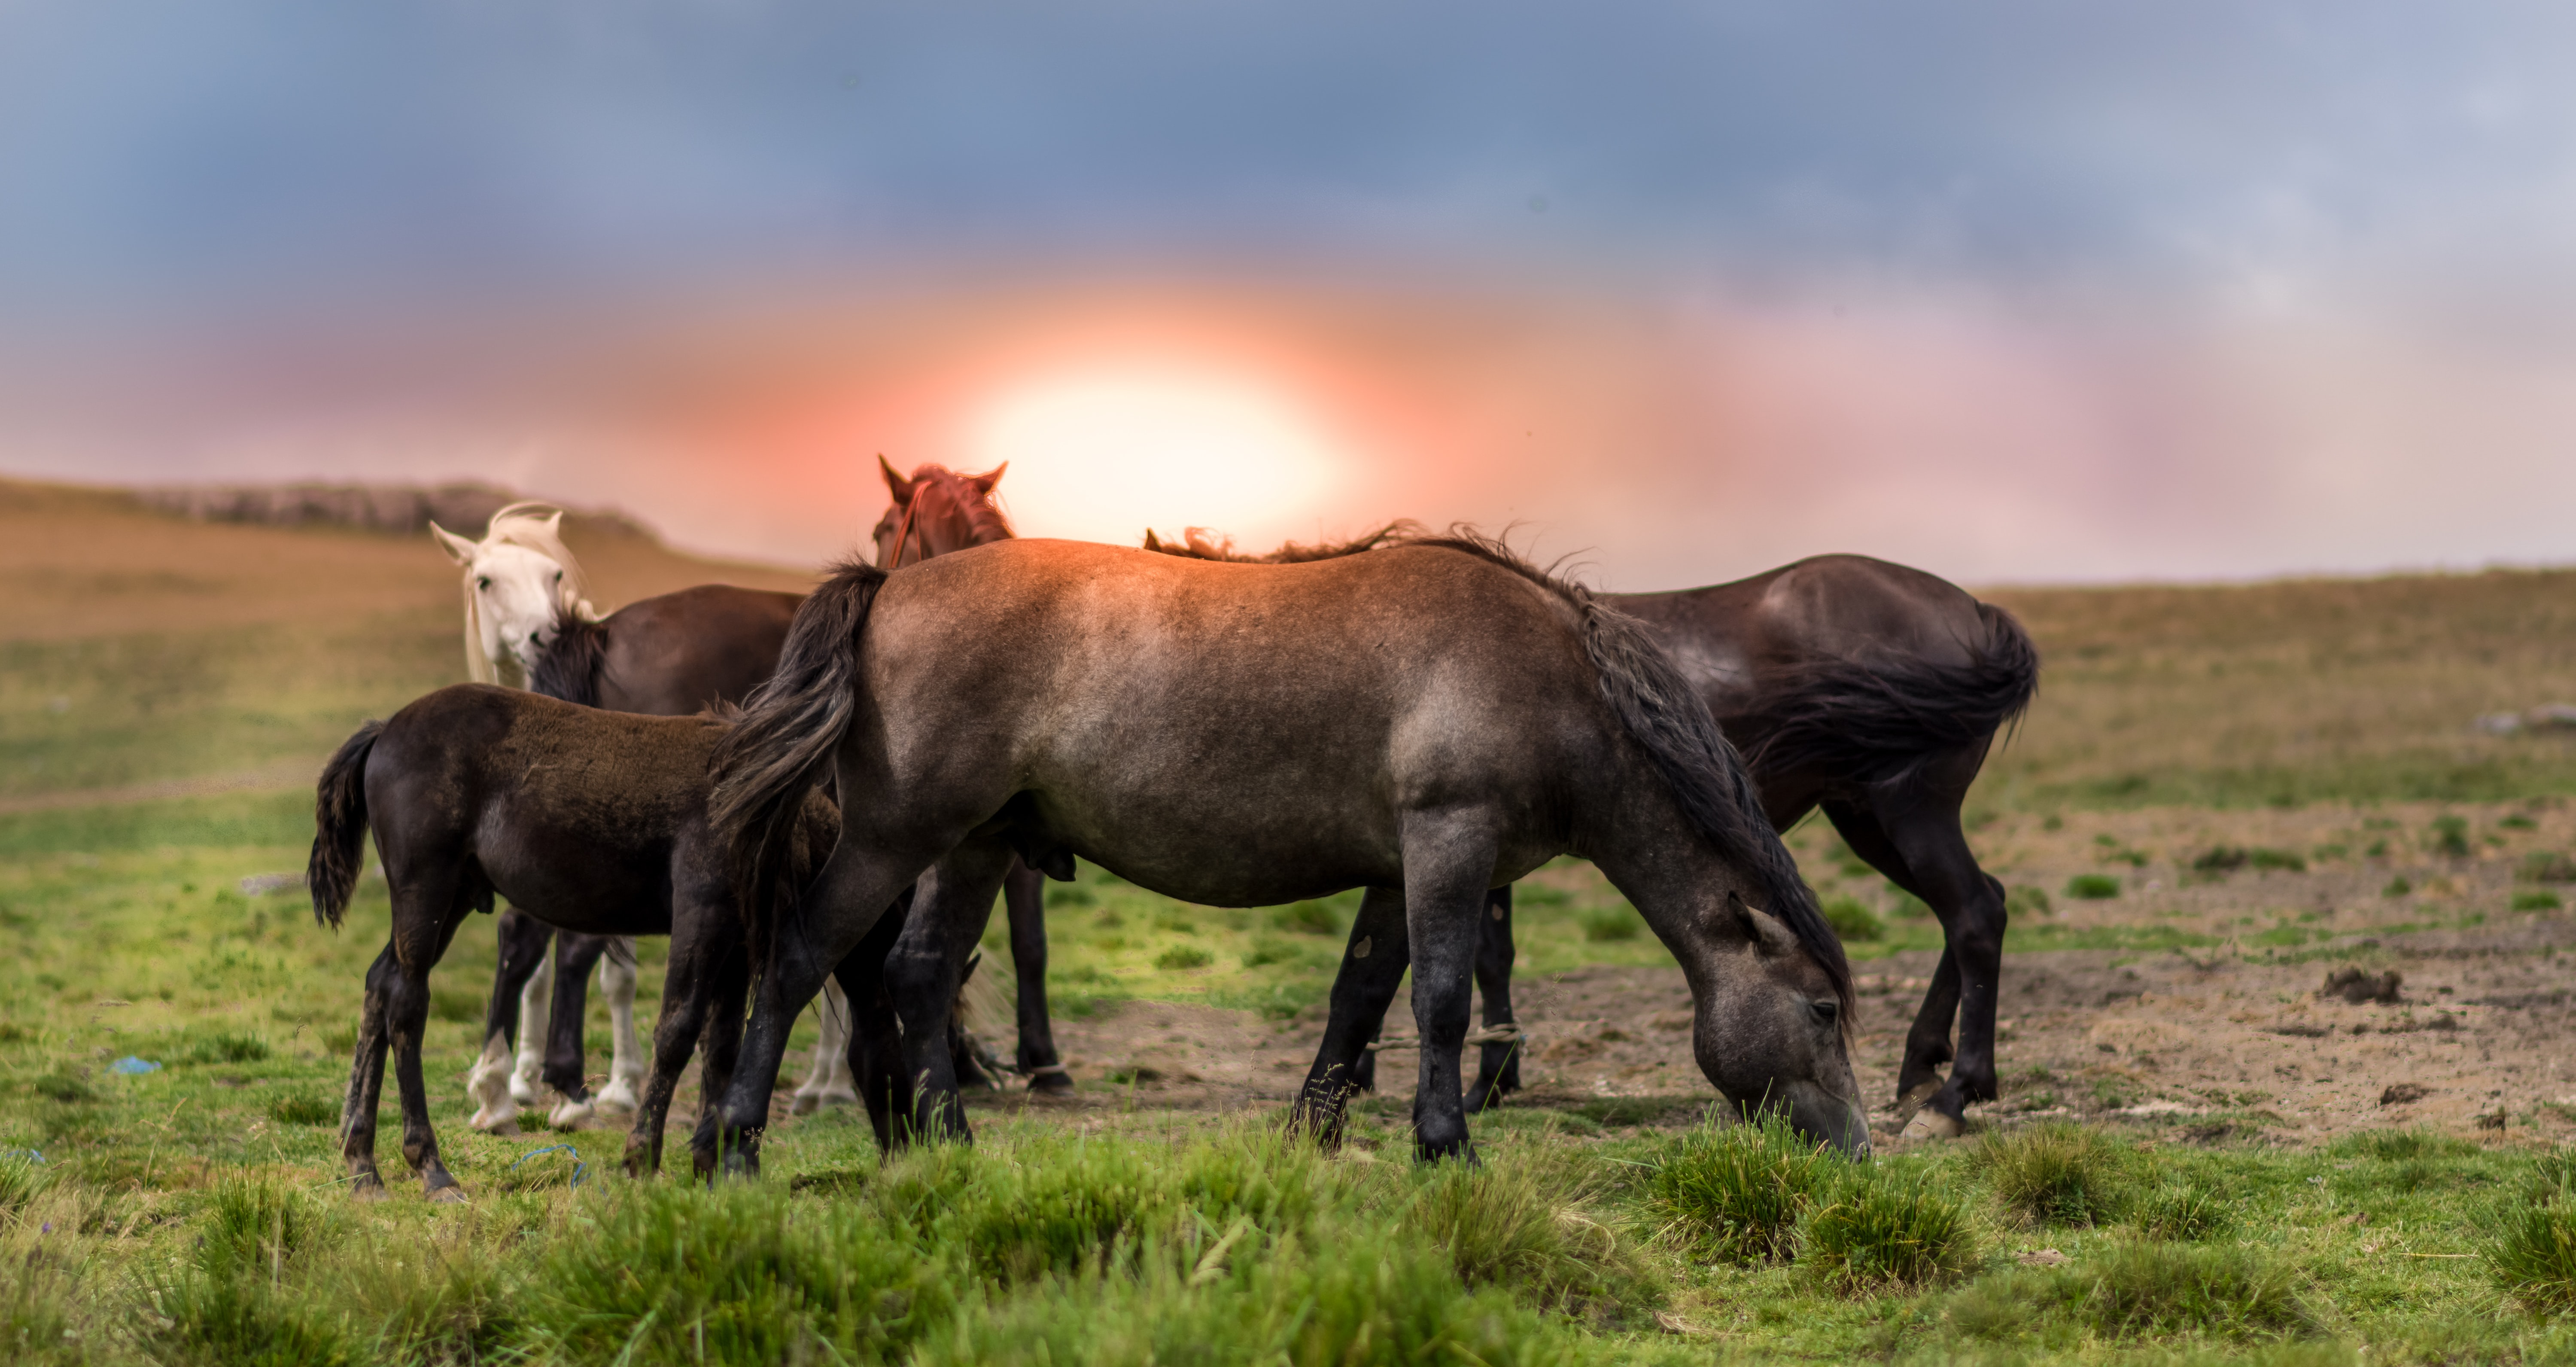 five black and white horses on green grass open field